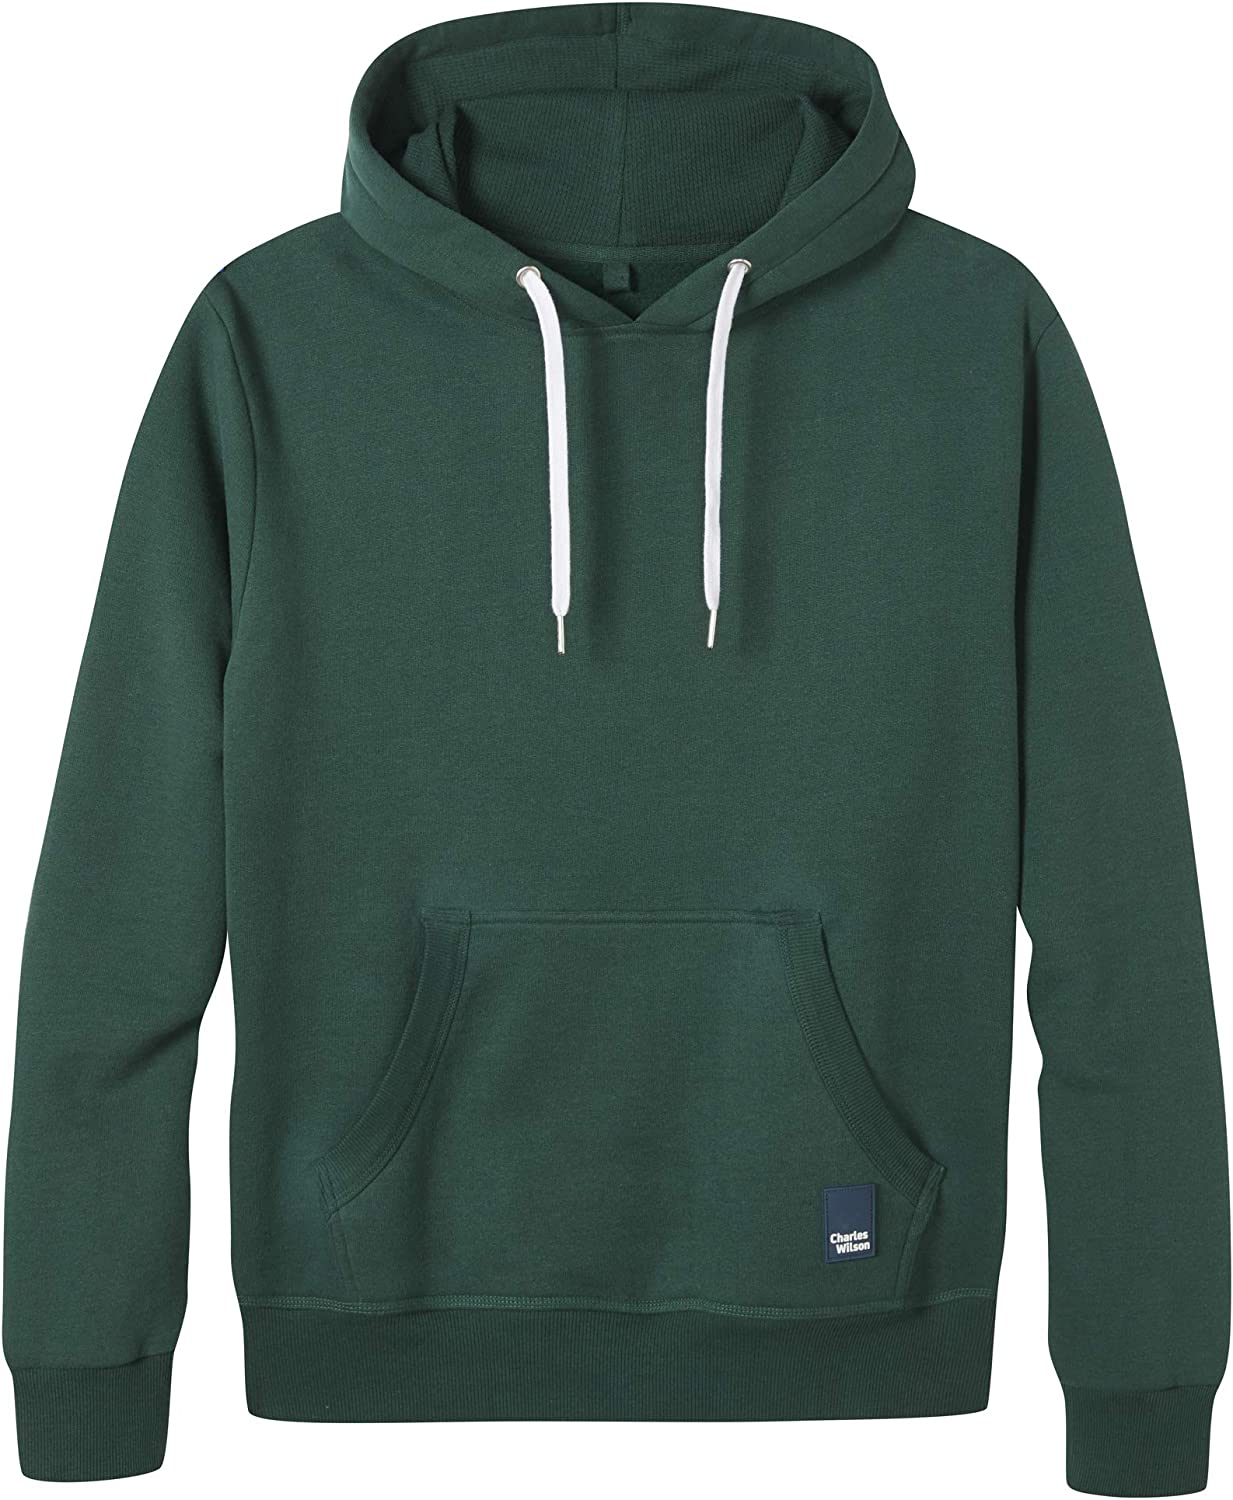 Charles Wilson Mens Pullover Midweight Hoody